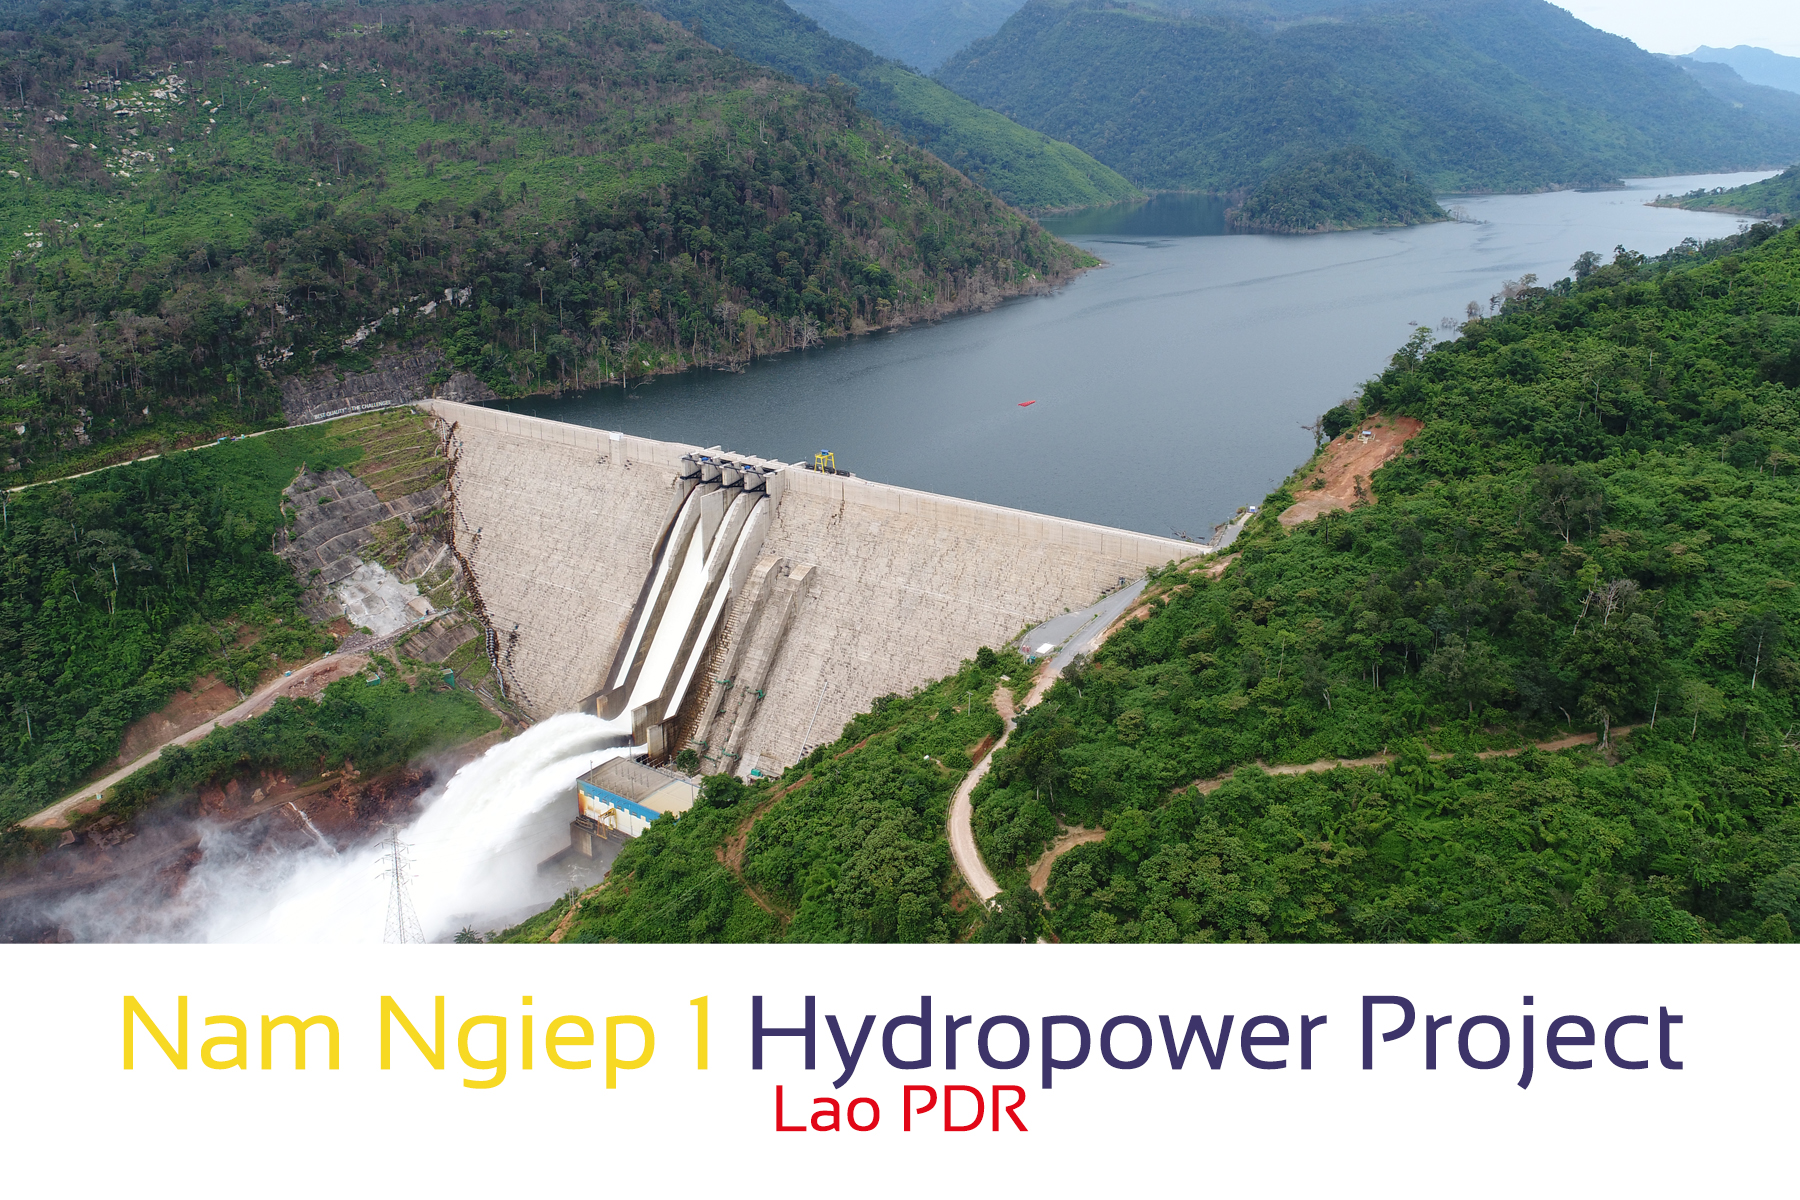 Nam Ngiep1 Hydropower Project